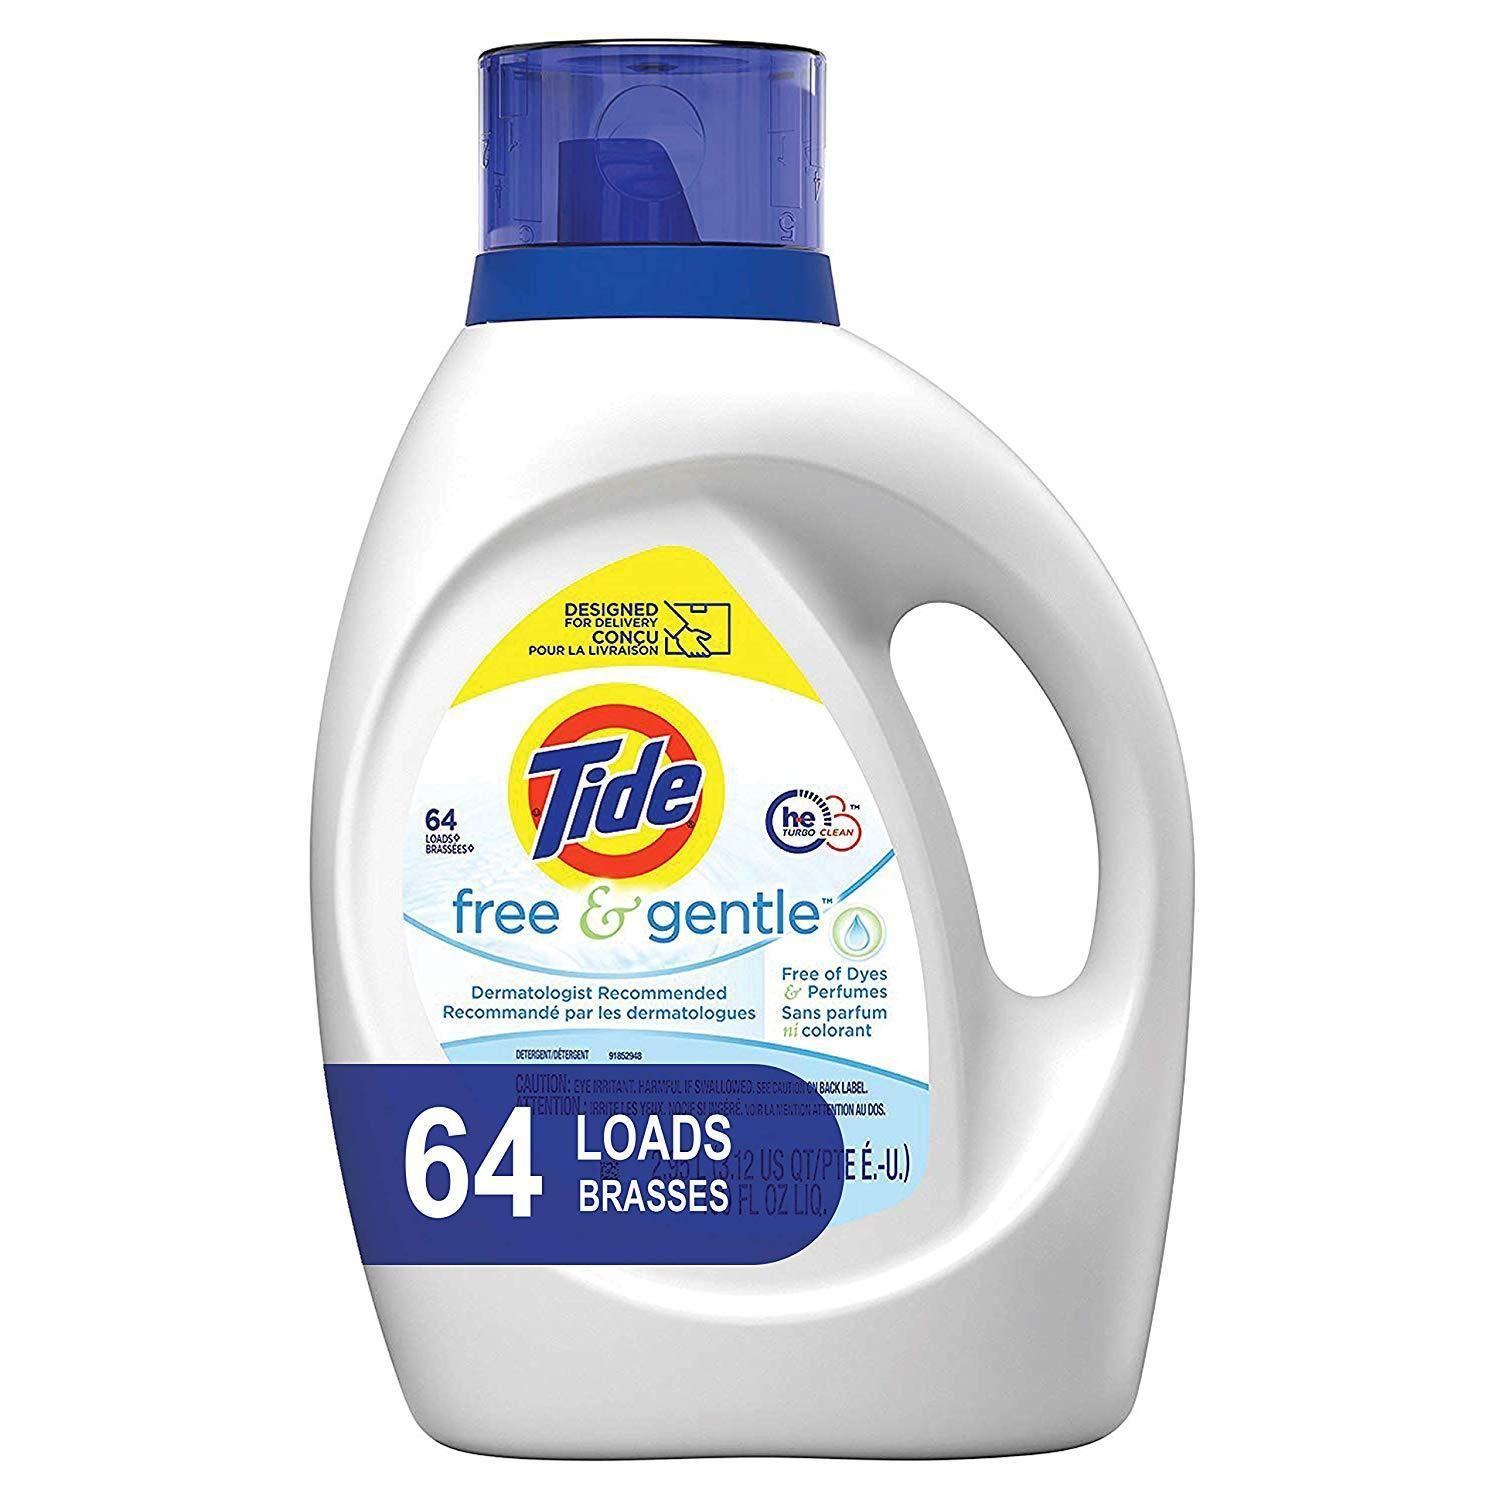 Pin By Search College Sports On Udealu Liquid Laundry Detergent Tide Free Gentle Liquid Tide